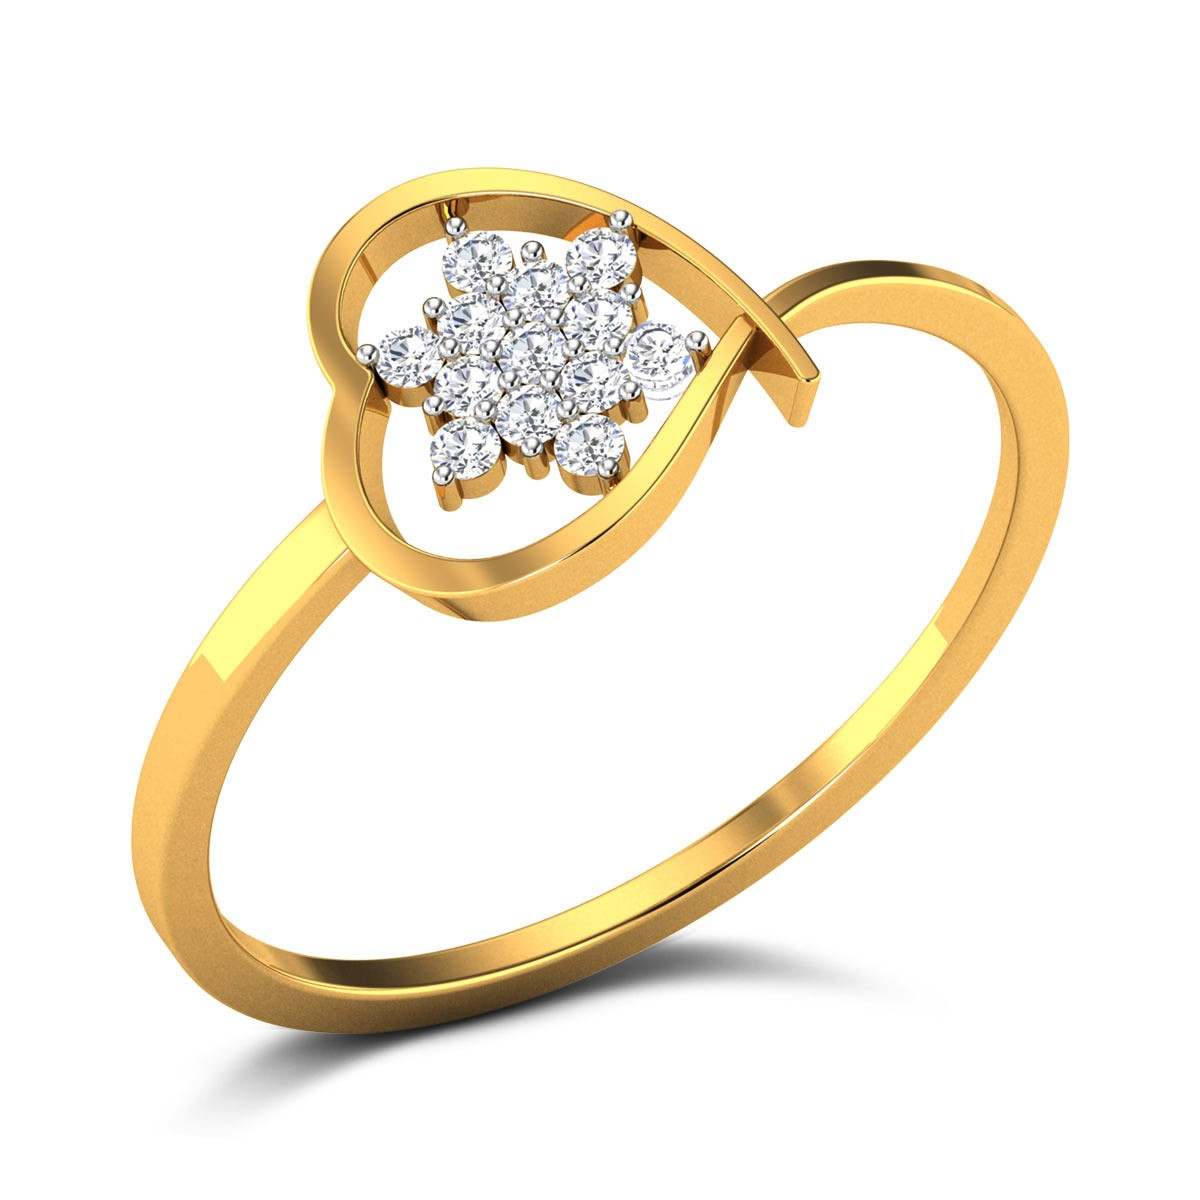 Buy Rudi Heart Diamond Ring in 2.08 Grams Gold Online